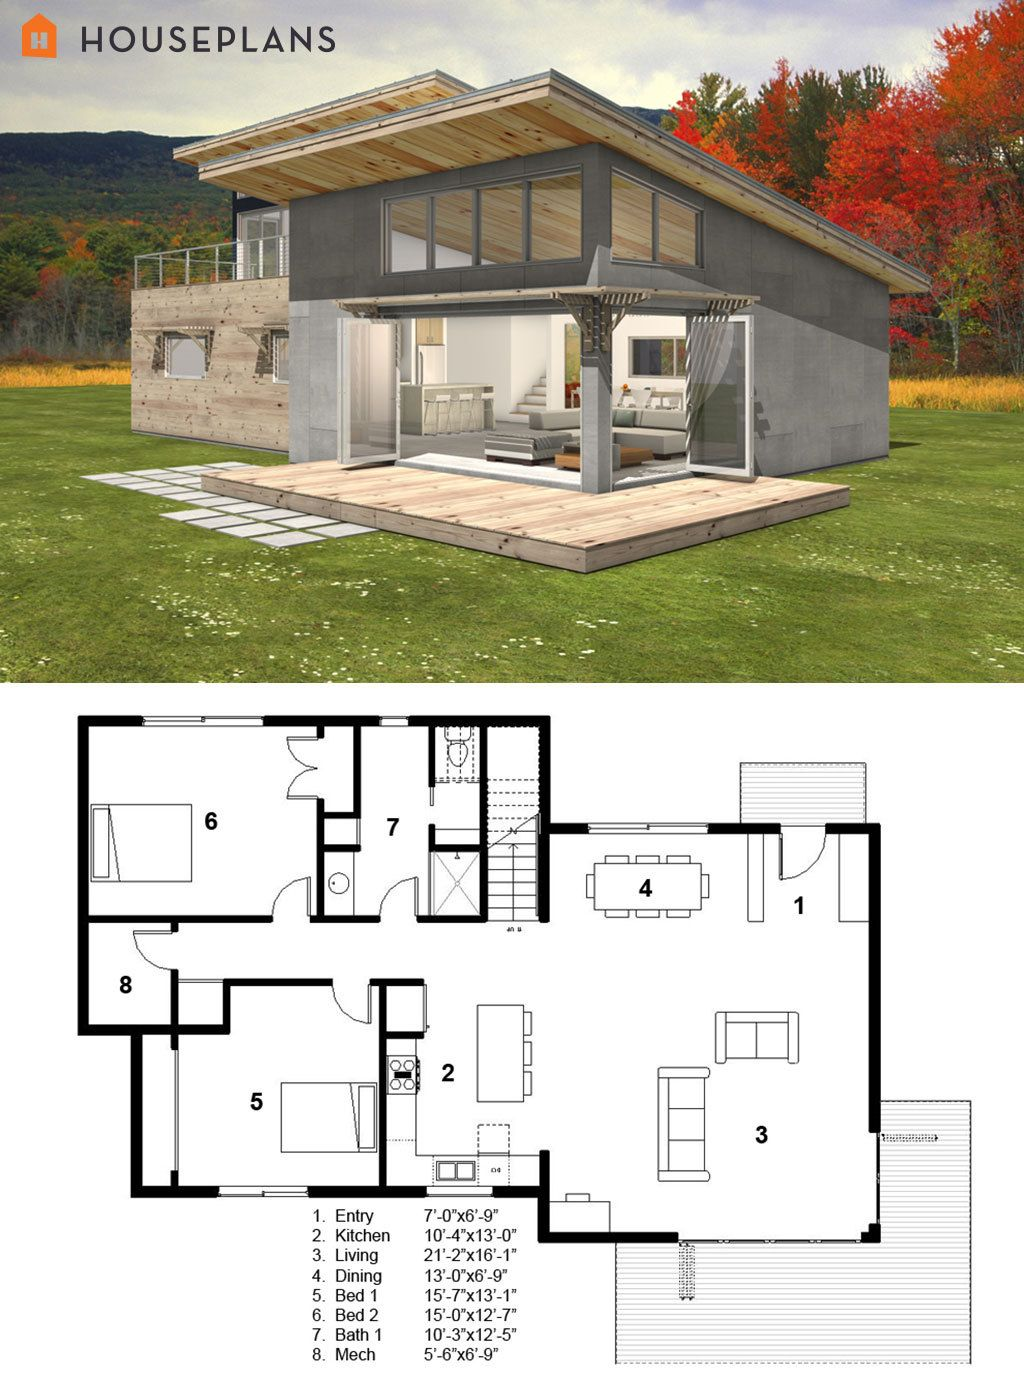 Modern style house plan 3 beds baths 2115 sq ft for 3 bedroom contemporary house plans